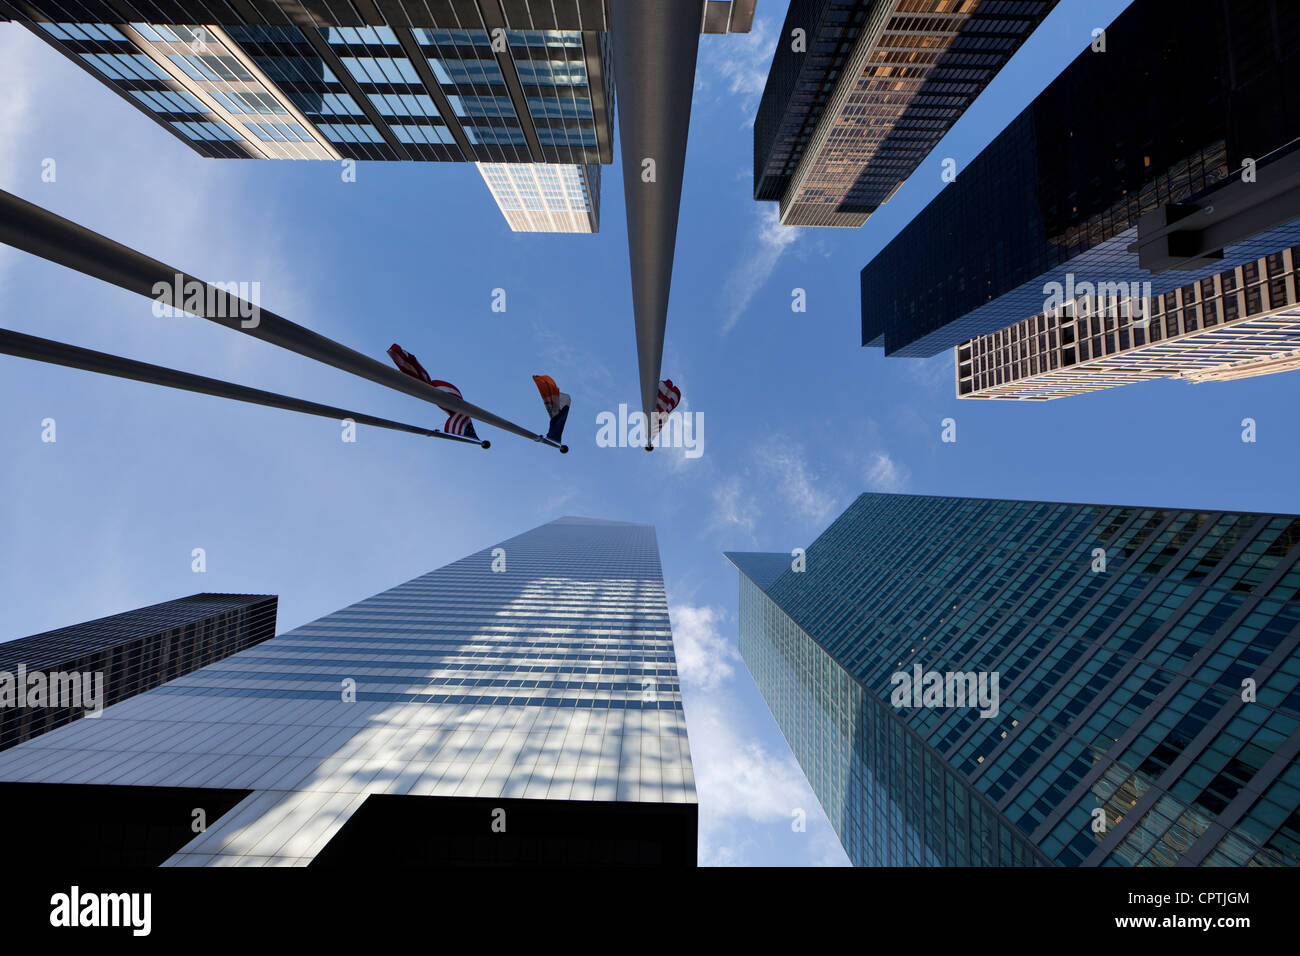 Looking up at skyscrapers in Midtown Manhattan, New York City - Stock Image